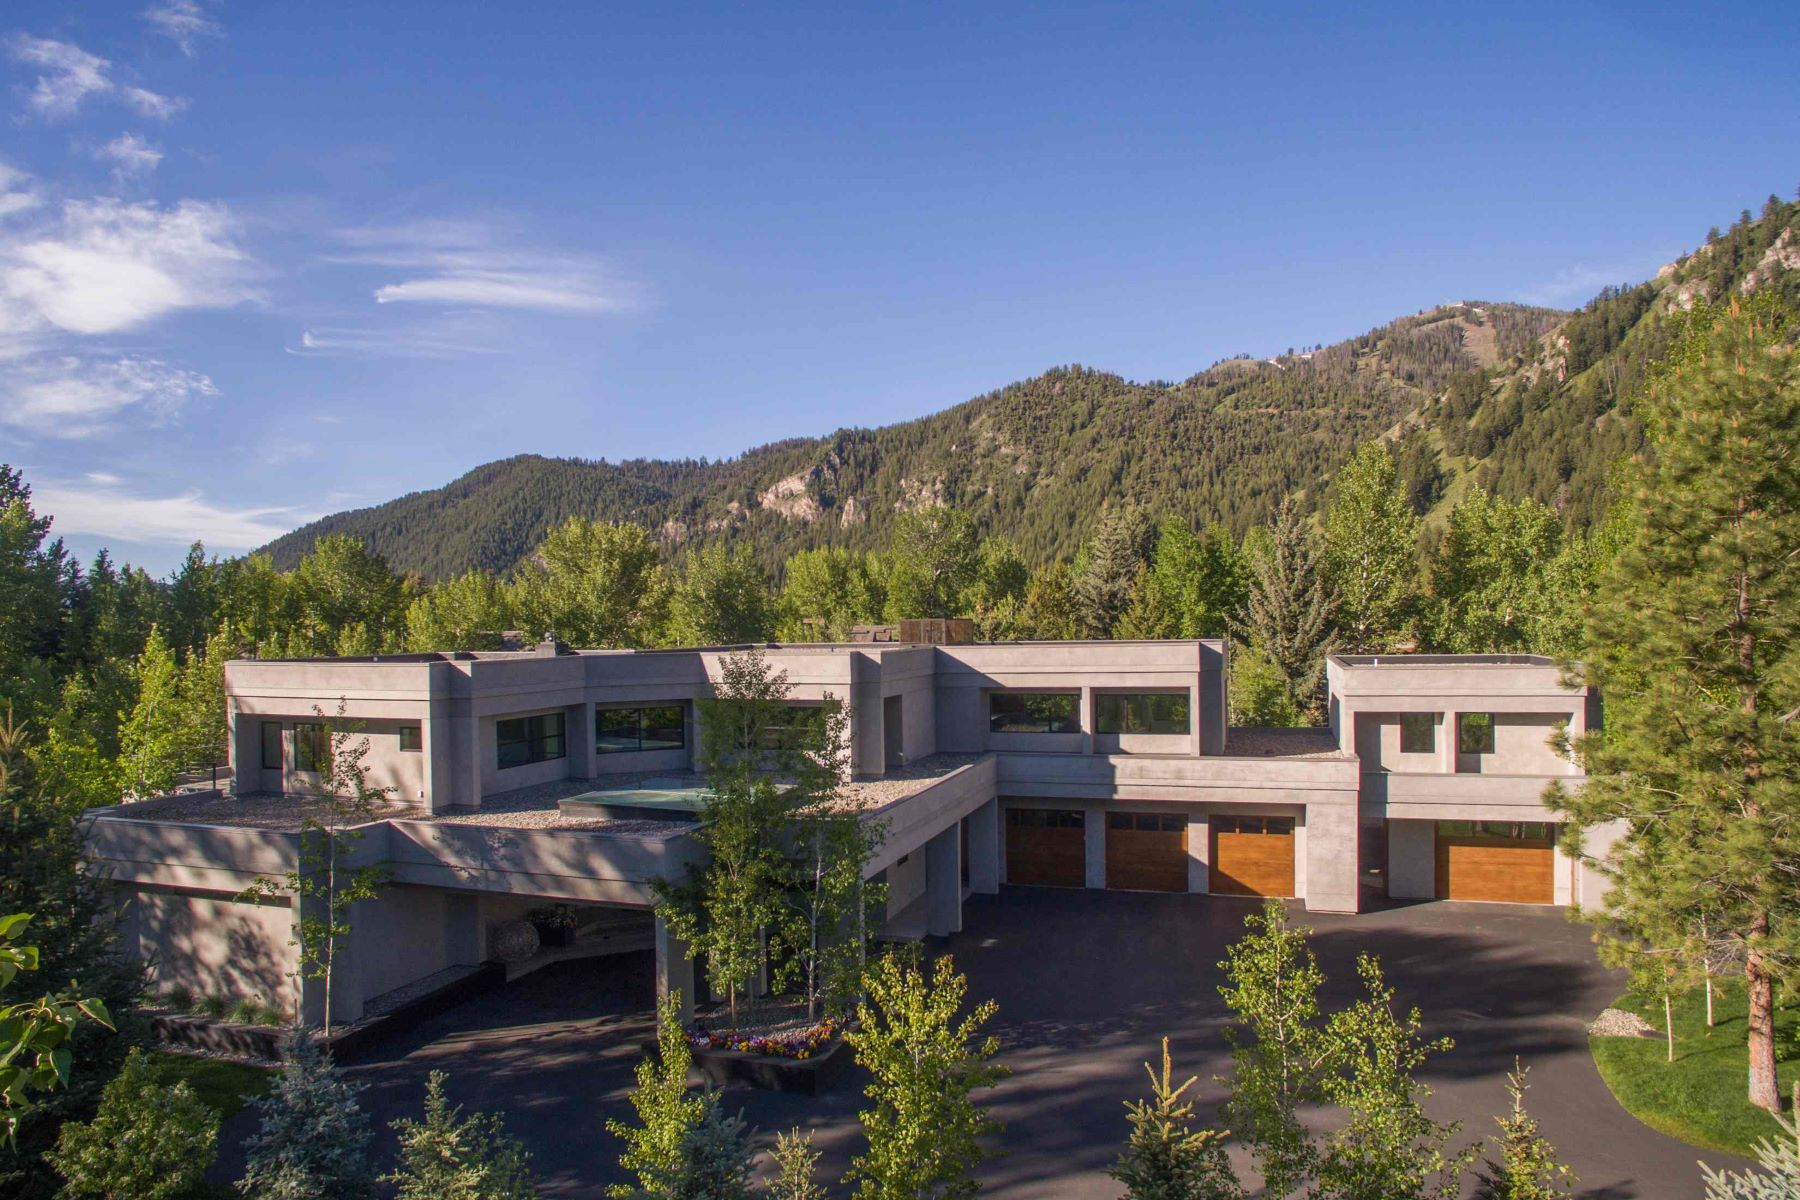 Casa Unifamiliar por un Venta en Inviting Innovation 207 Broadway Boulevard Ketchum, Idaho 83340 Estados Unidos